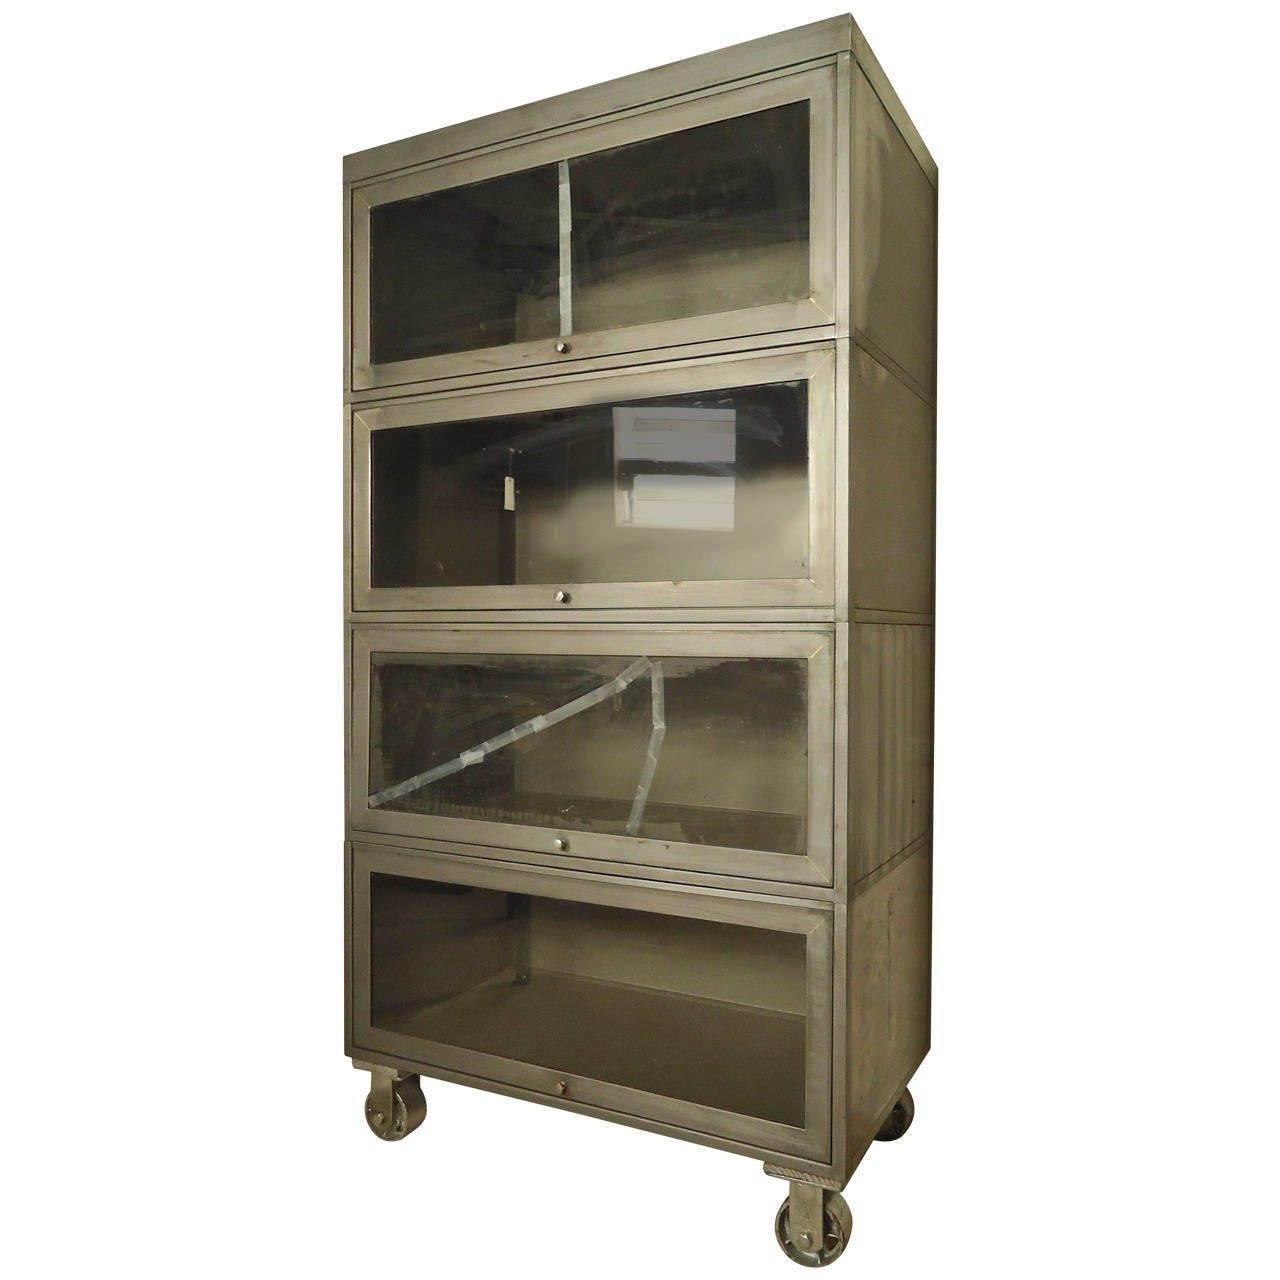 Barrister Bookcase For Sale Nj